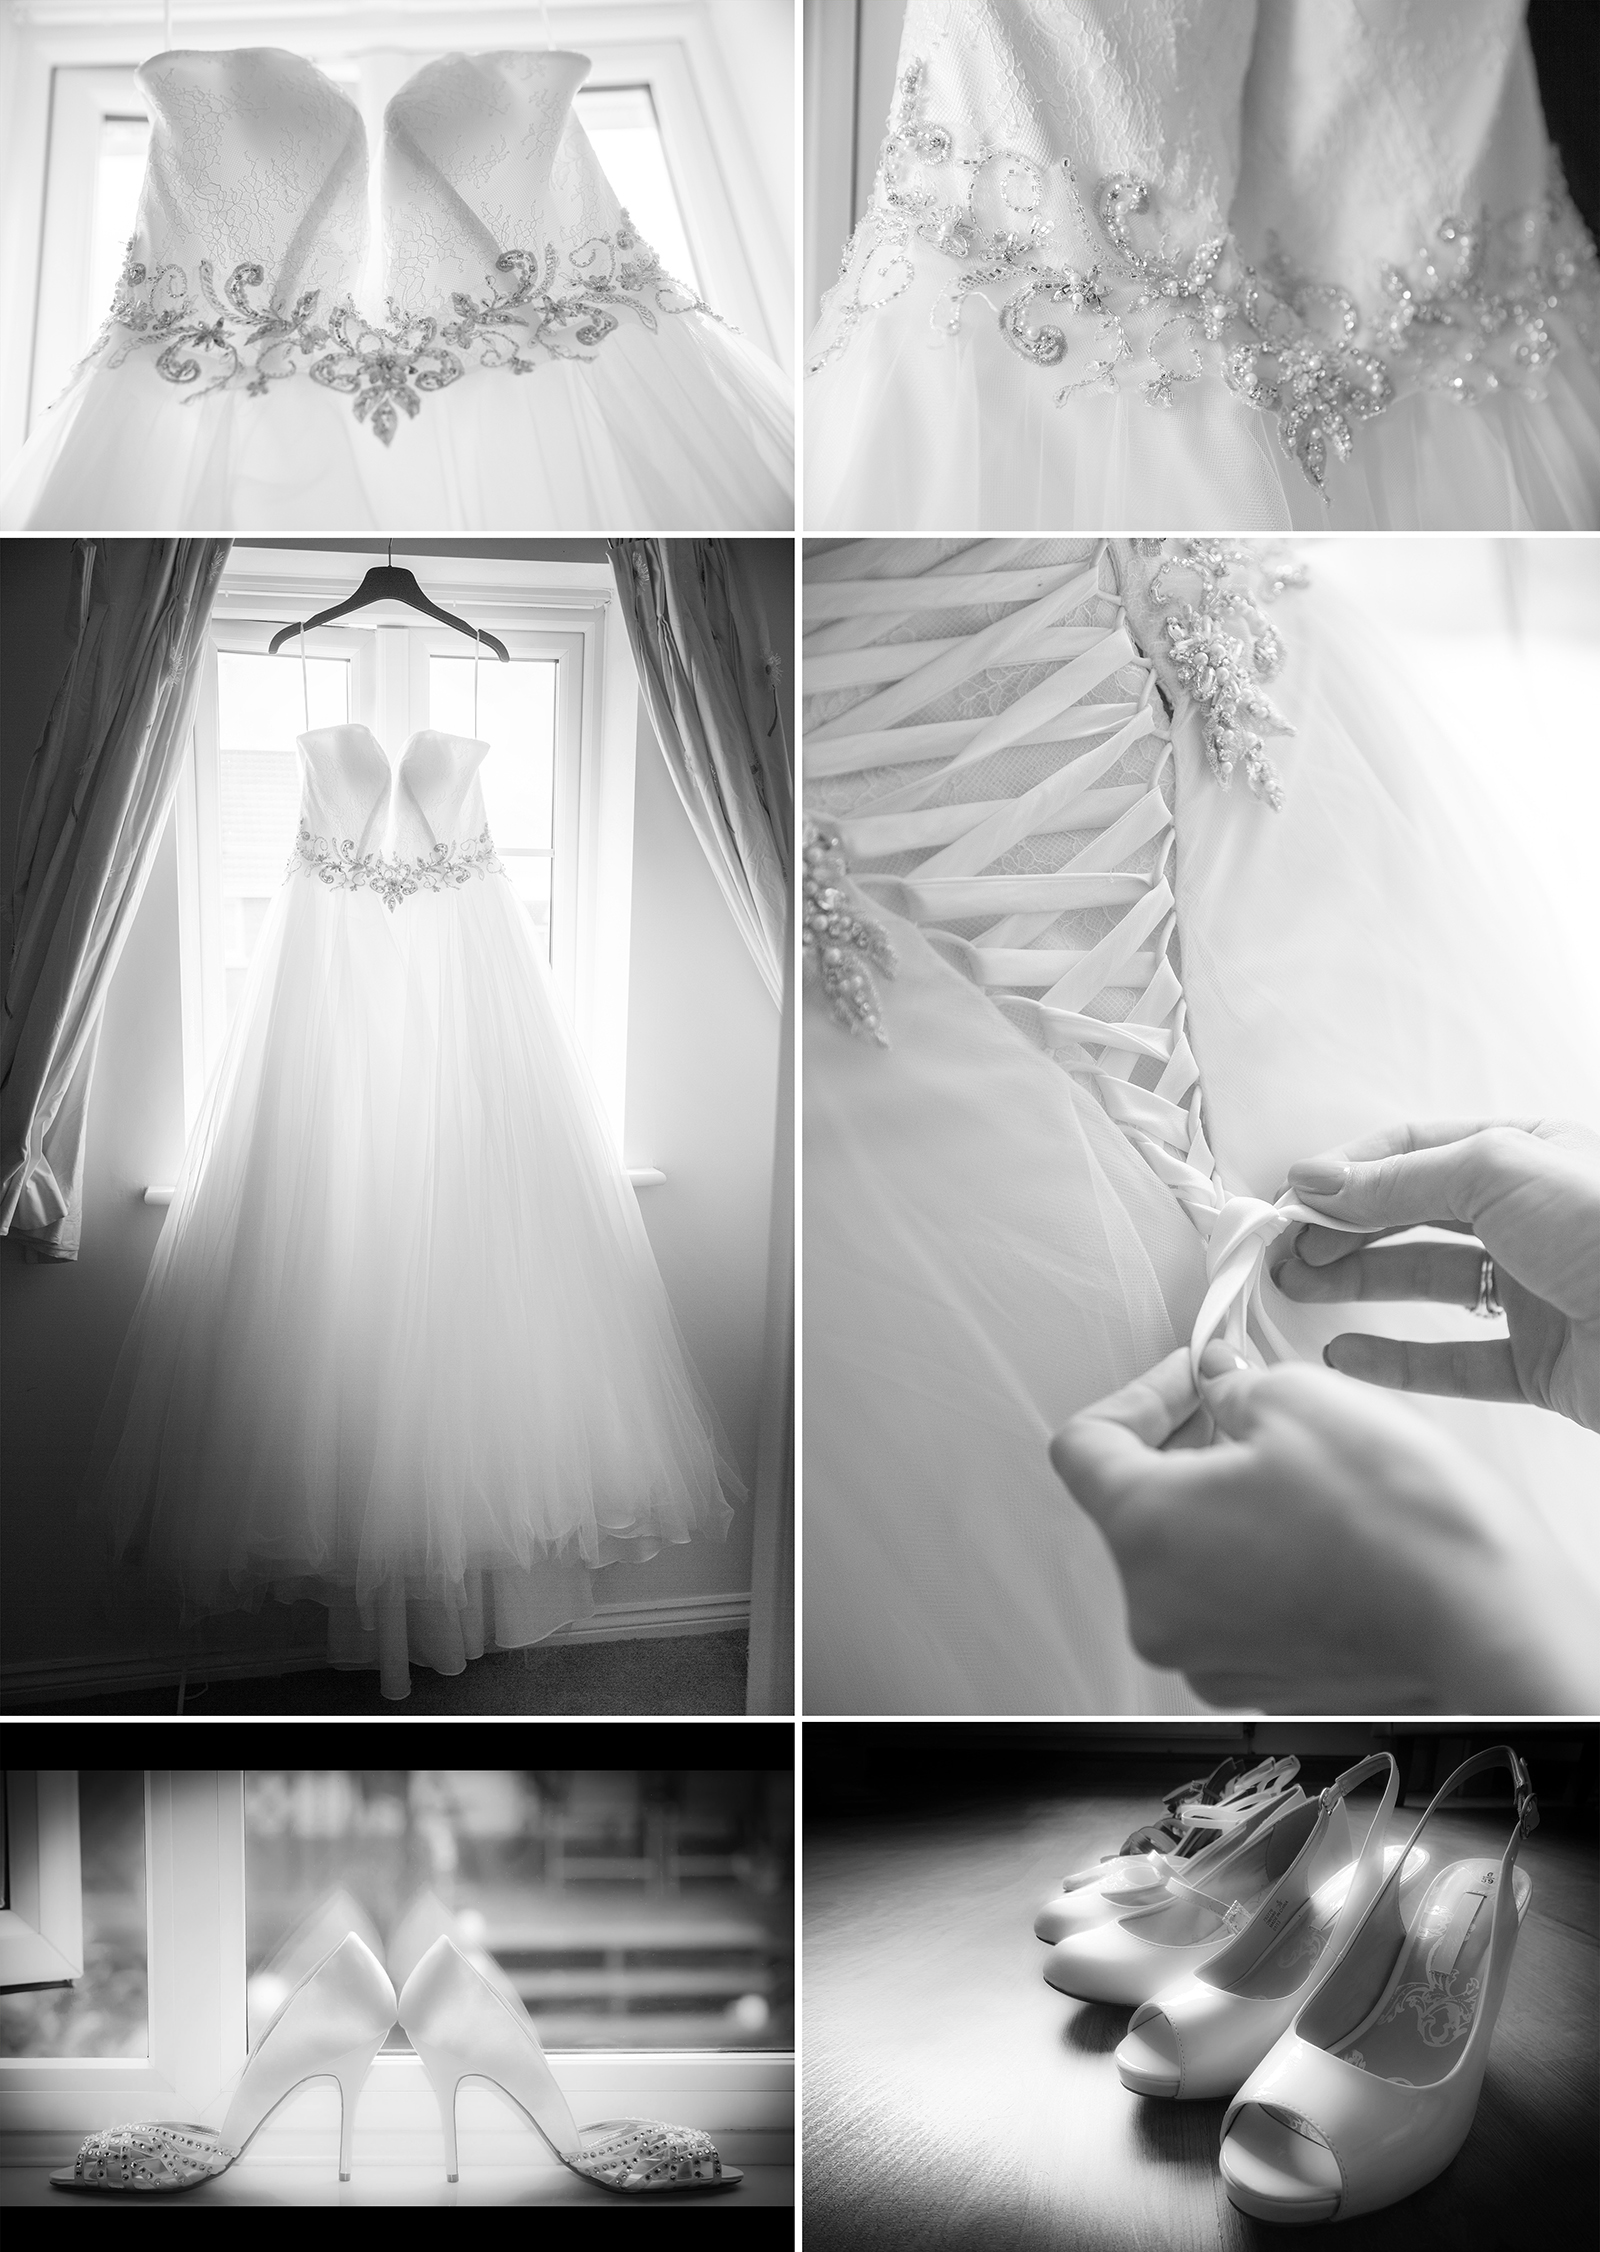 Wedding Dress / Black & White